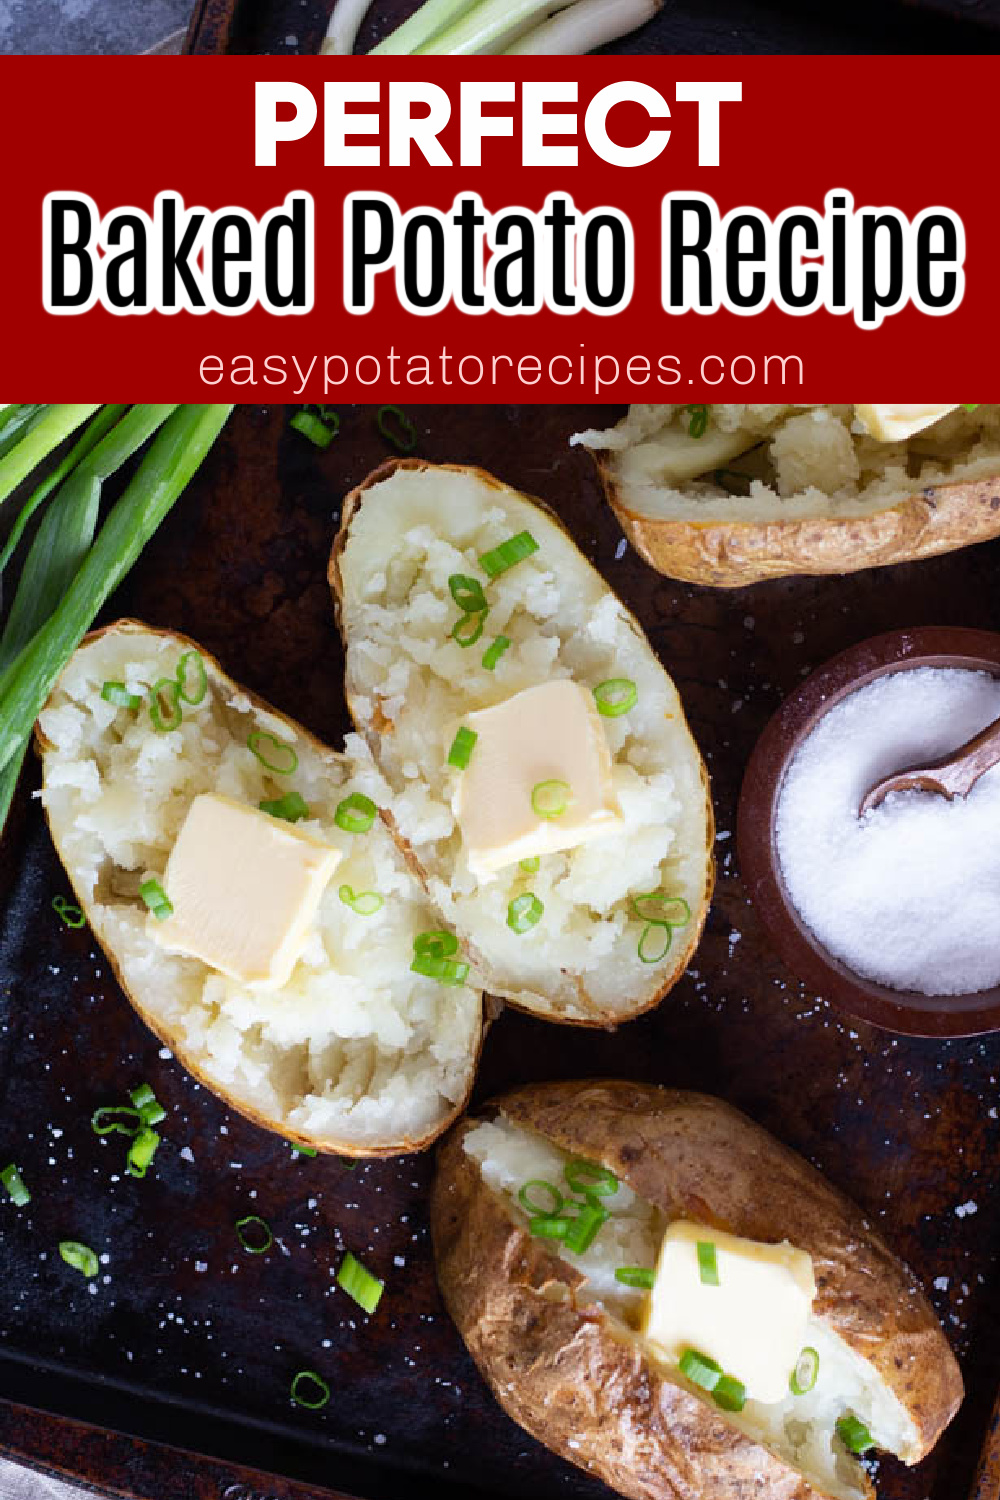 Perfect baked potato recipe! Learn how to make the best oven baked potatoes with just a few ingredients. These are crispy on the outside and so fluffy and tender on the inside. Serve with butter, sour cream, bacon and cheese!